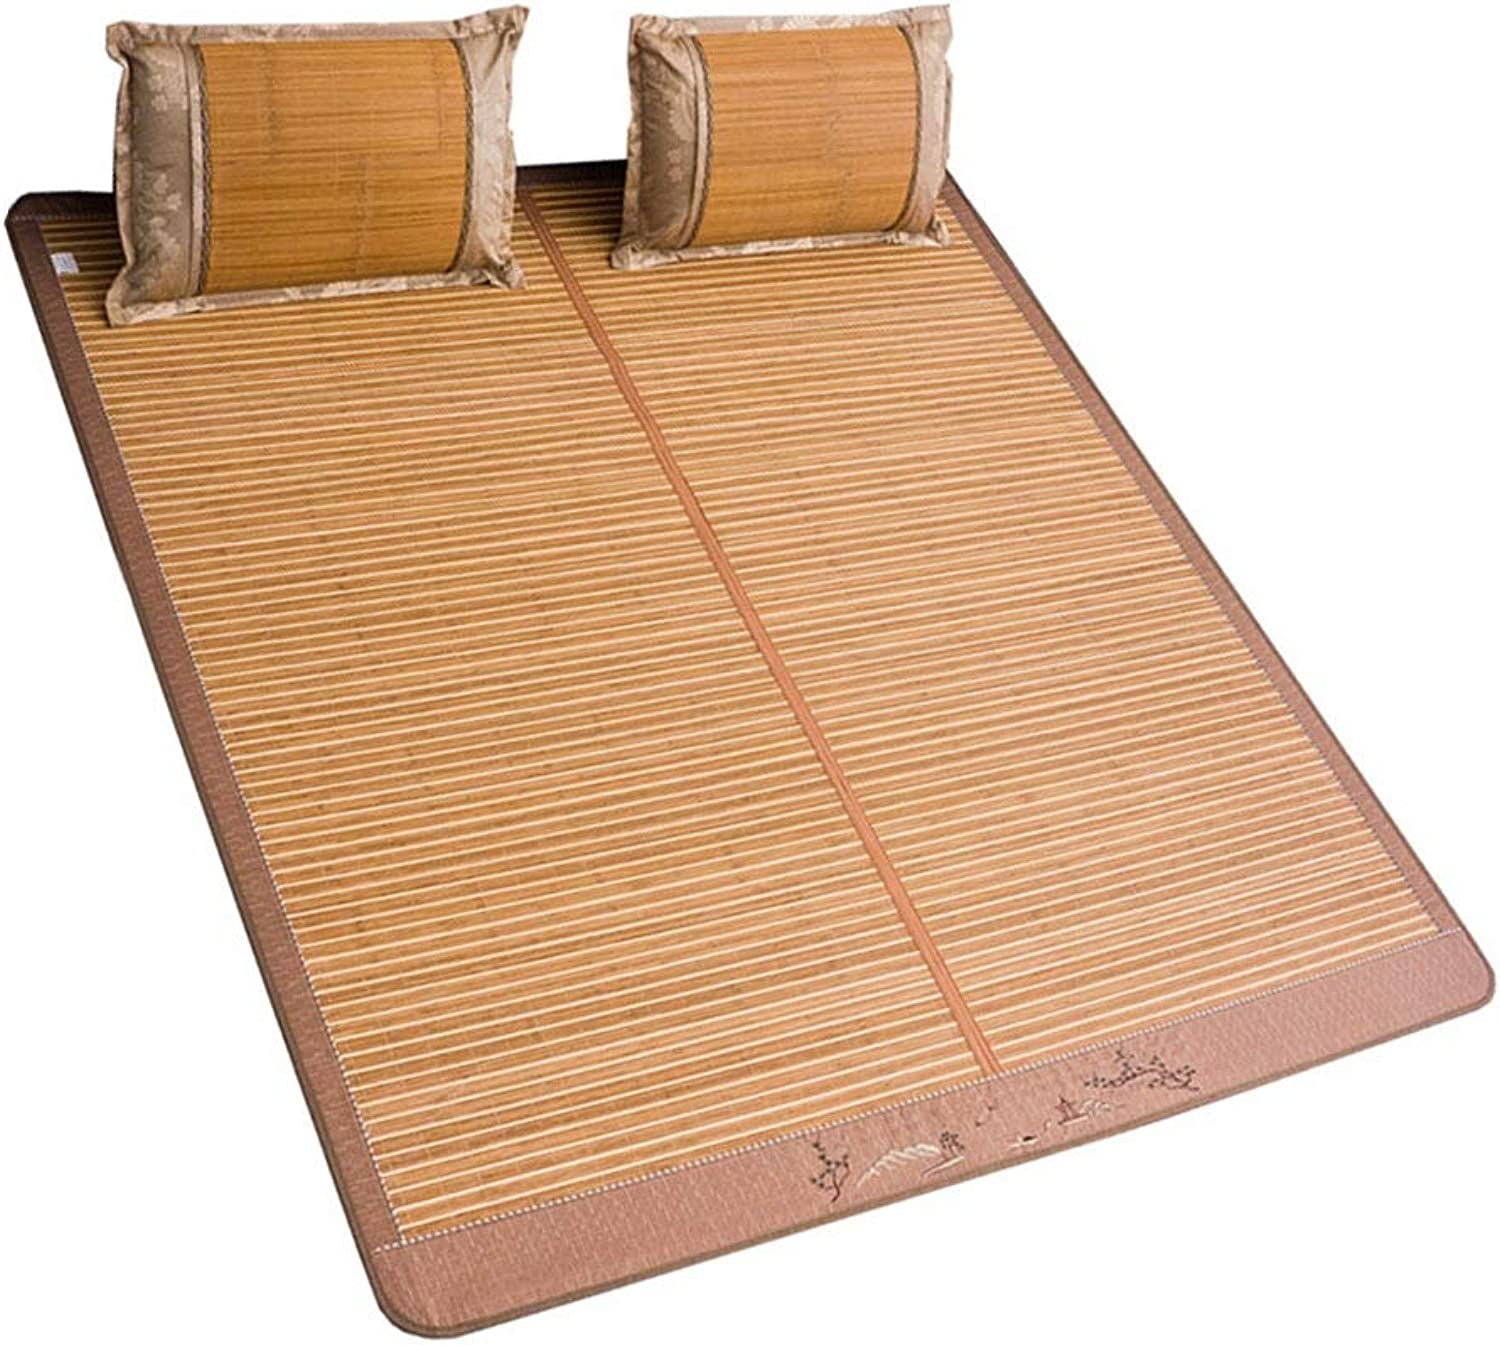 Bamboo Summer Sleeping Mat Foldable Sleep-lite Bedding Baby, Student Dorm, Family - Baby Bed Twin Full(Size   71 79 ) (Size   59 (W)77 (L))